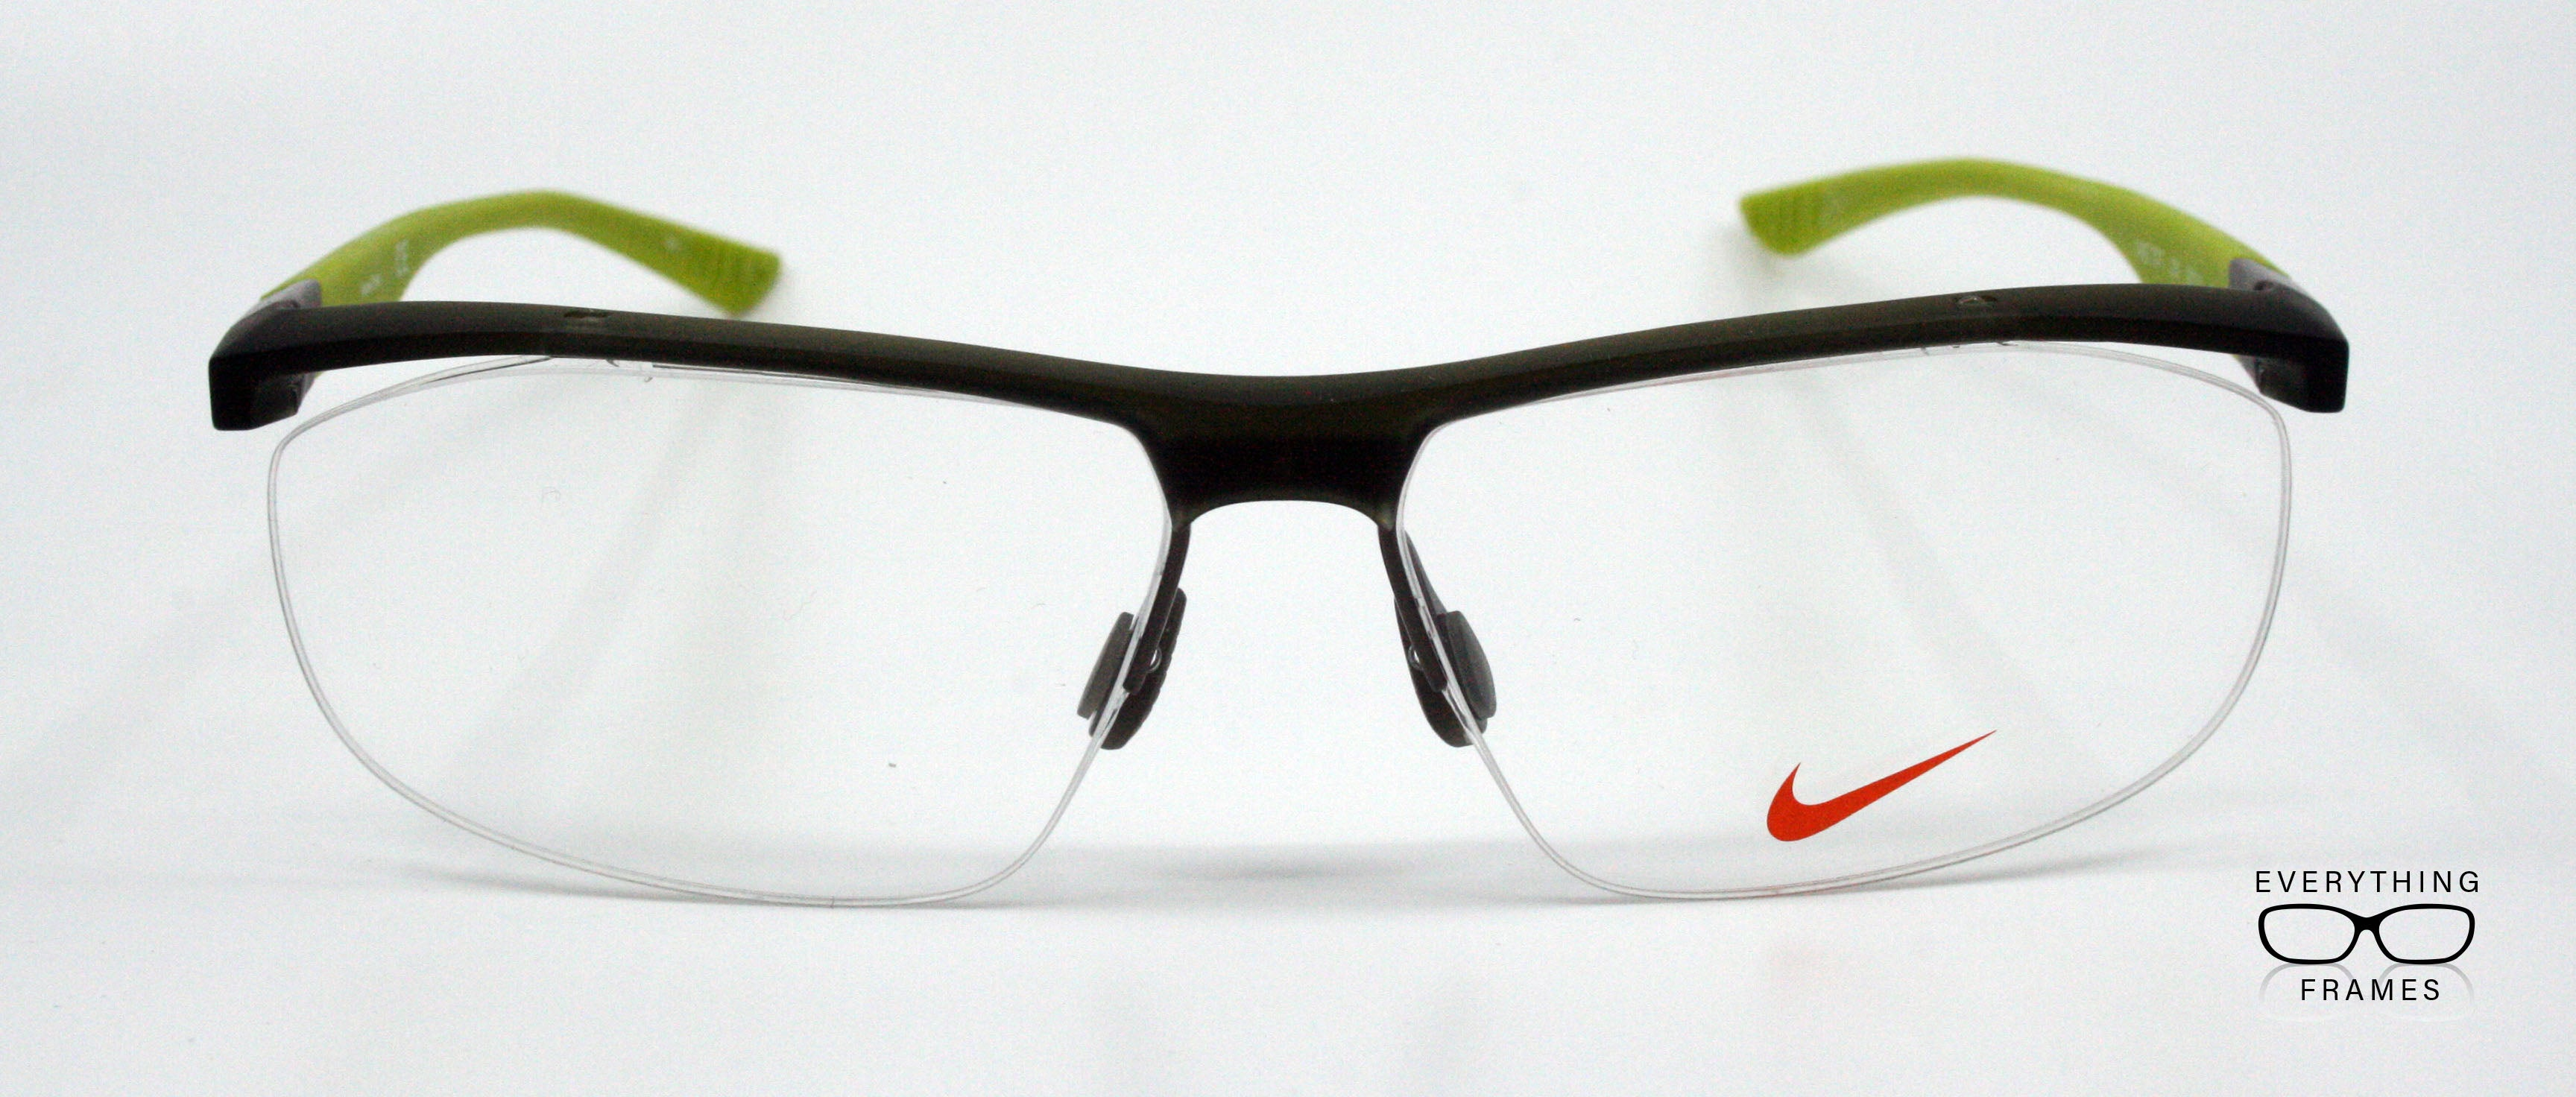 a8e23297fc1c Nike Crystal Cargo Khaki / Cyber Rectangle Eyeglasses for Men NIKE7077 229  Front View